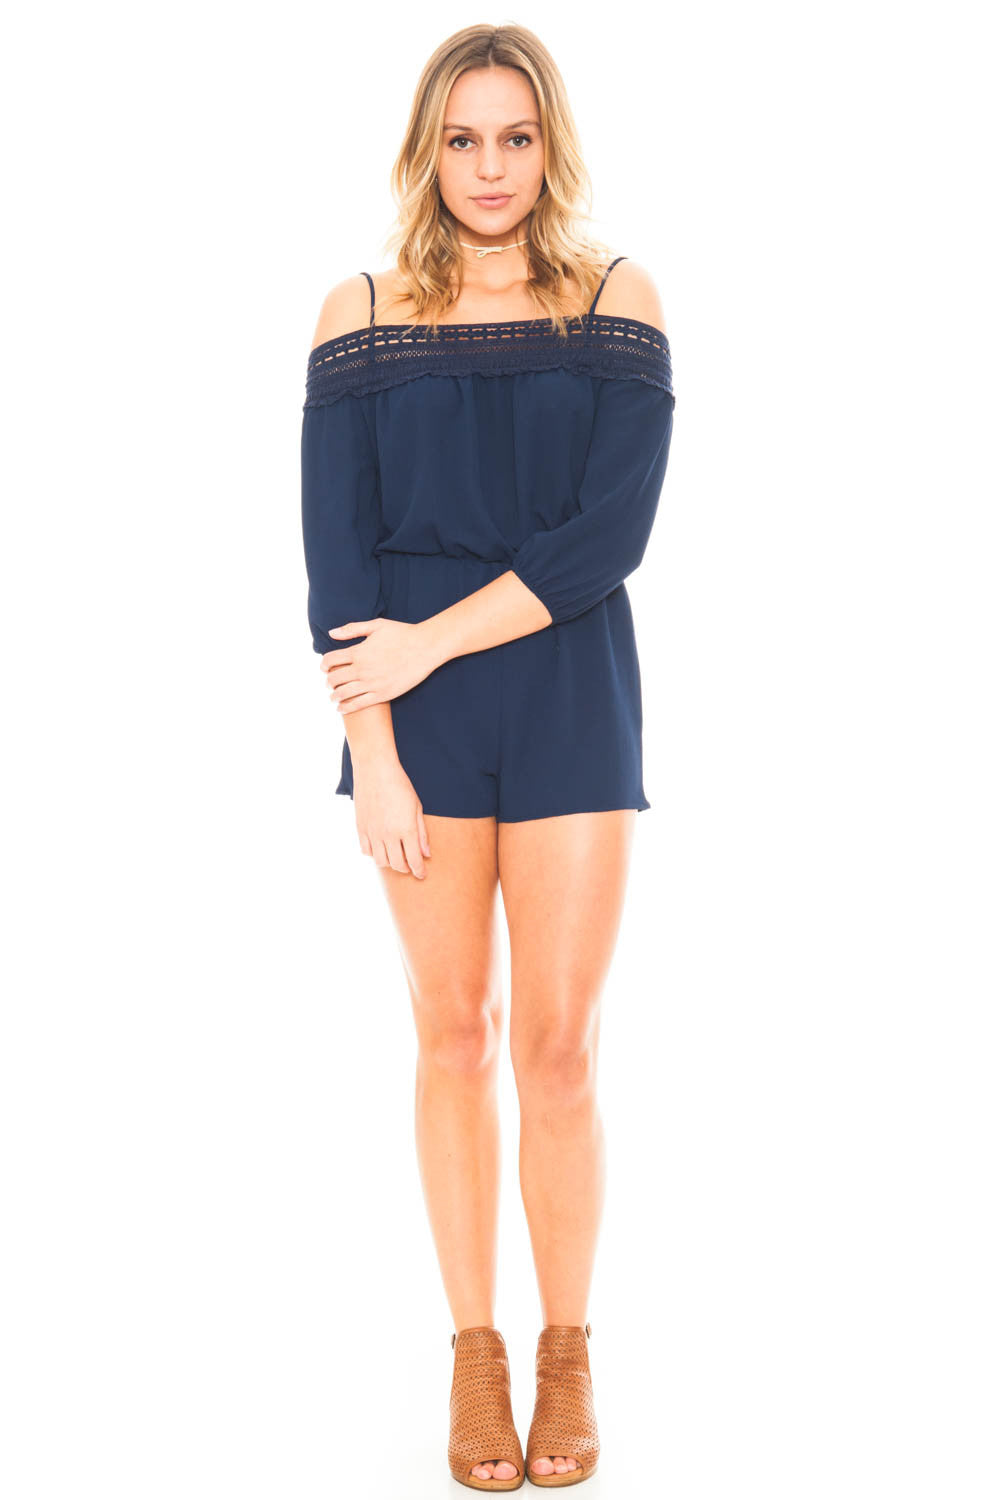 Romper - 3/4 Sleeve Cold Shoulder Romper with Crochet Neckline